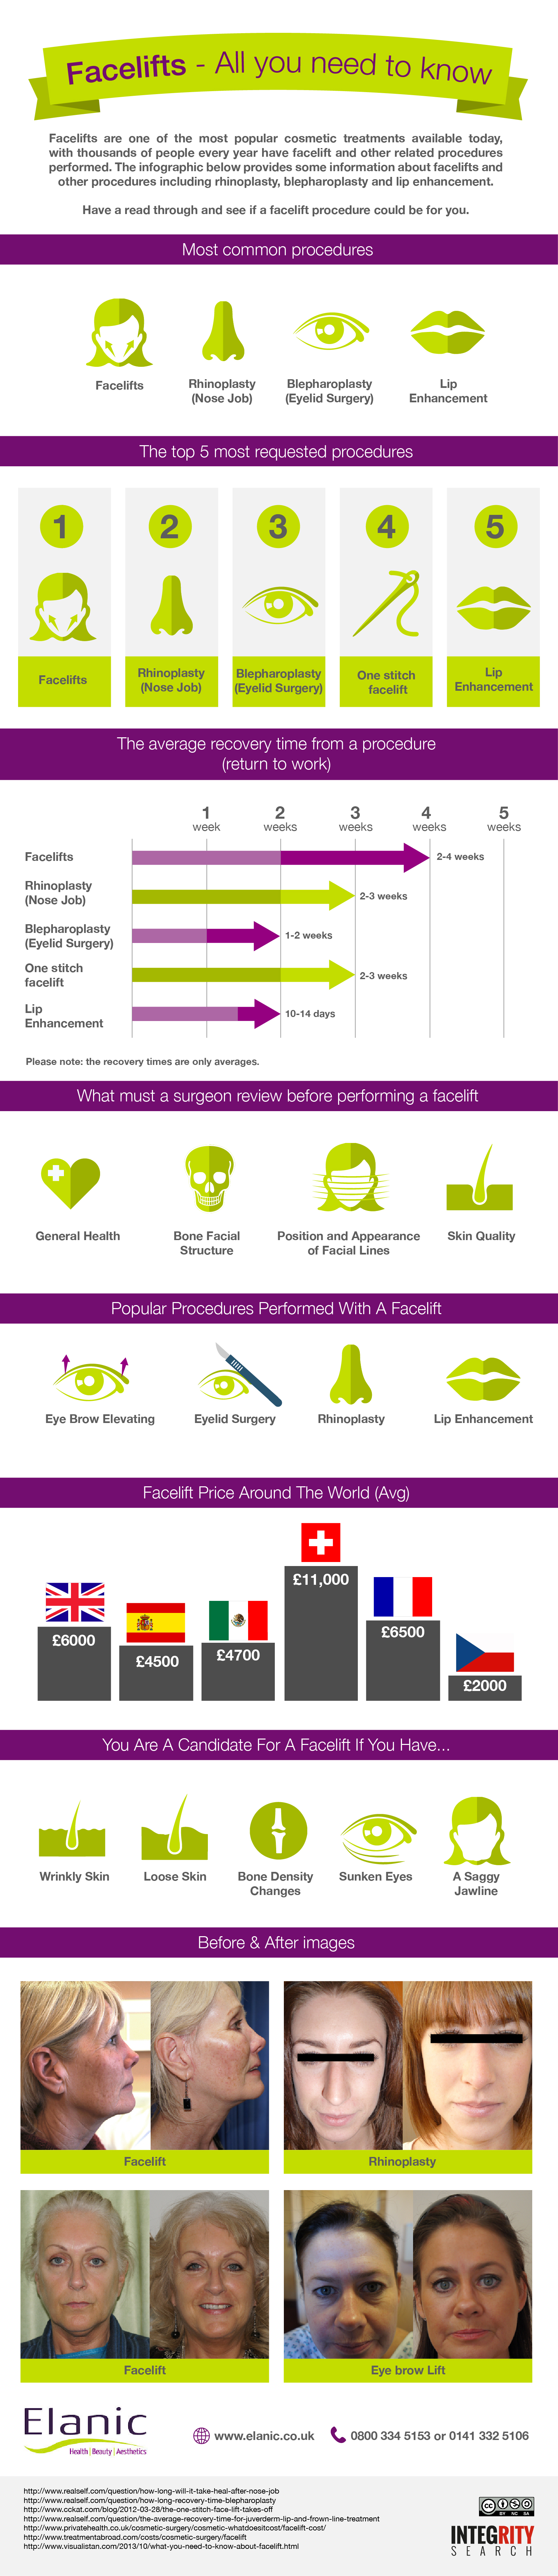 Facelifts Infographic